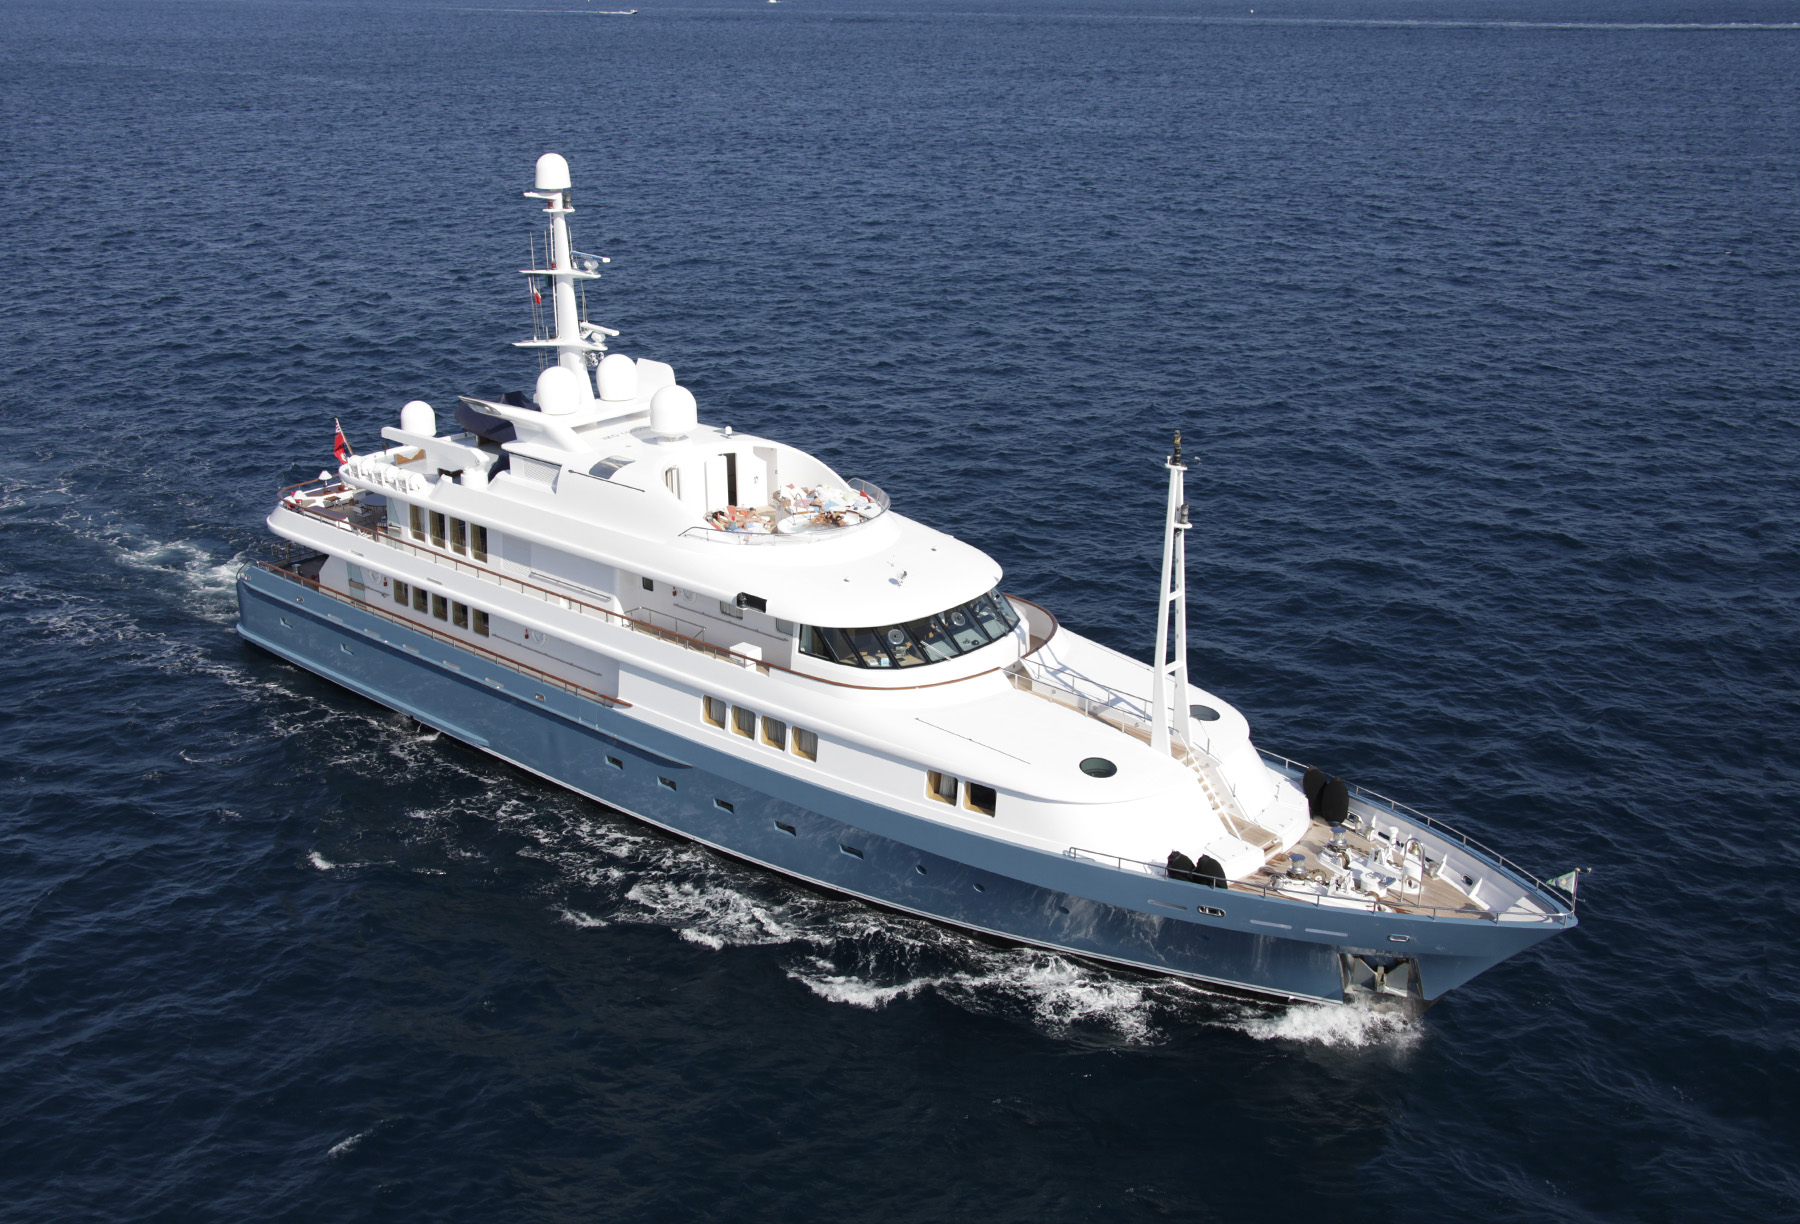 AMORE MIO 2 charter specs and number of guests